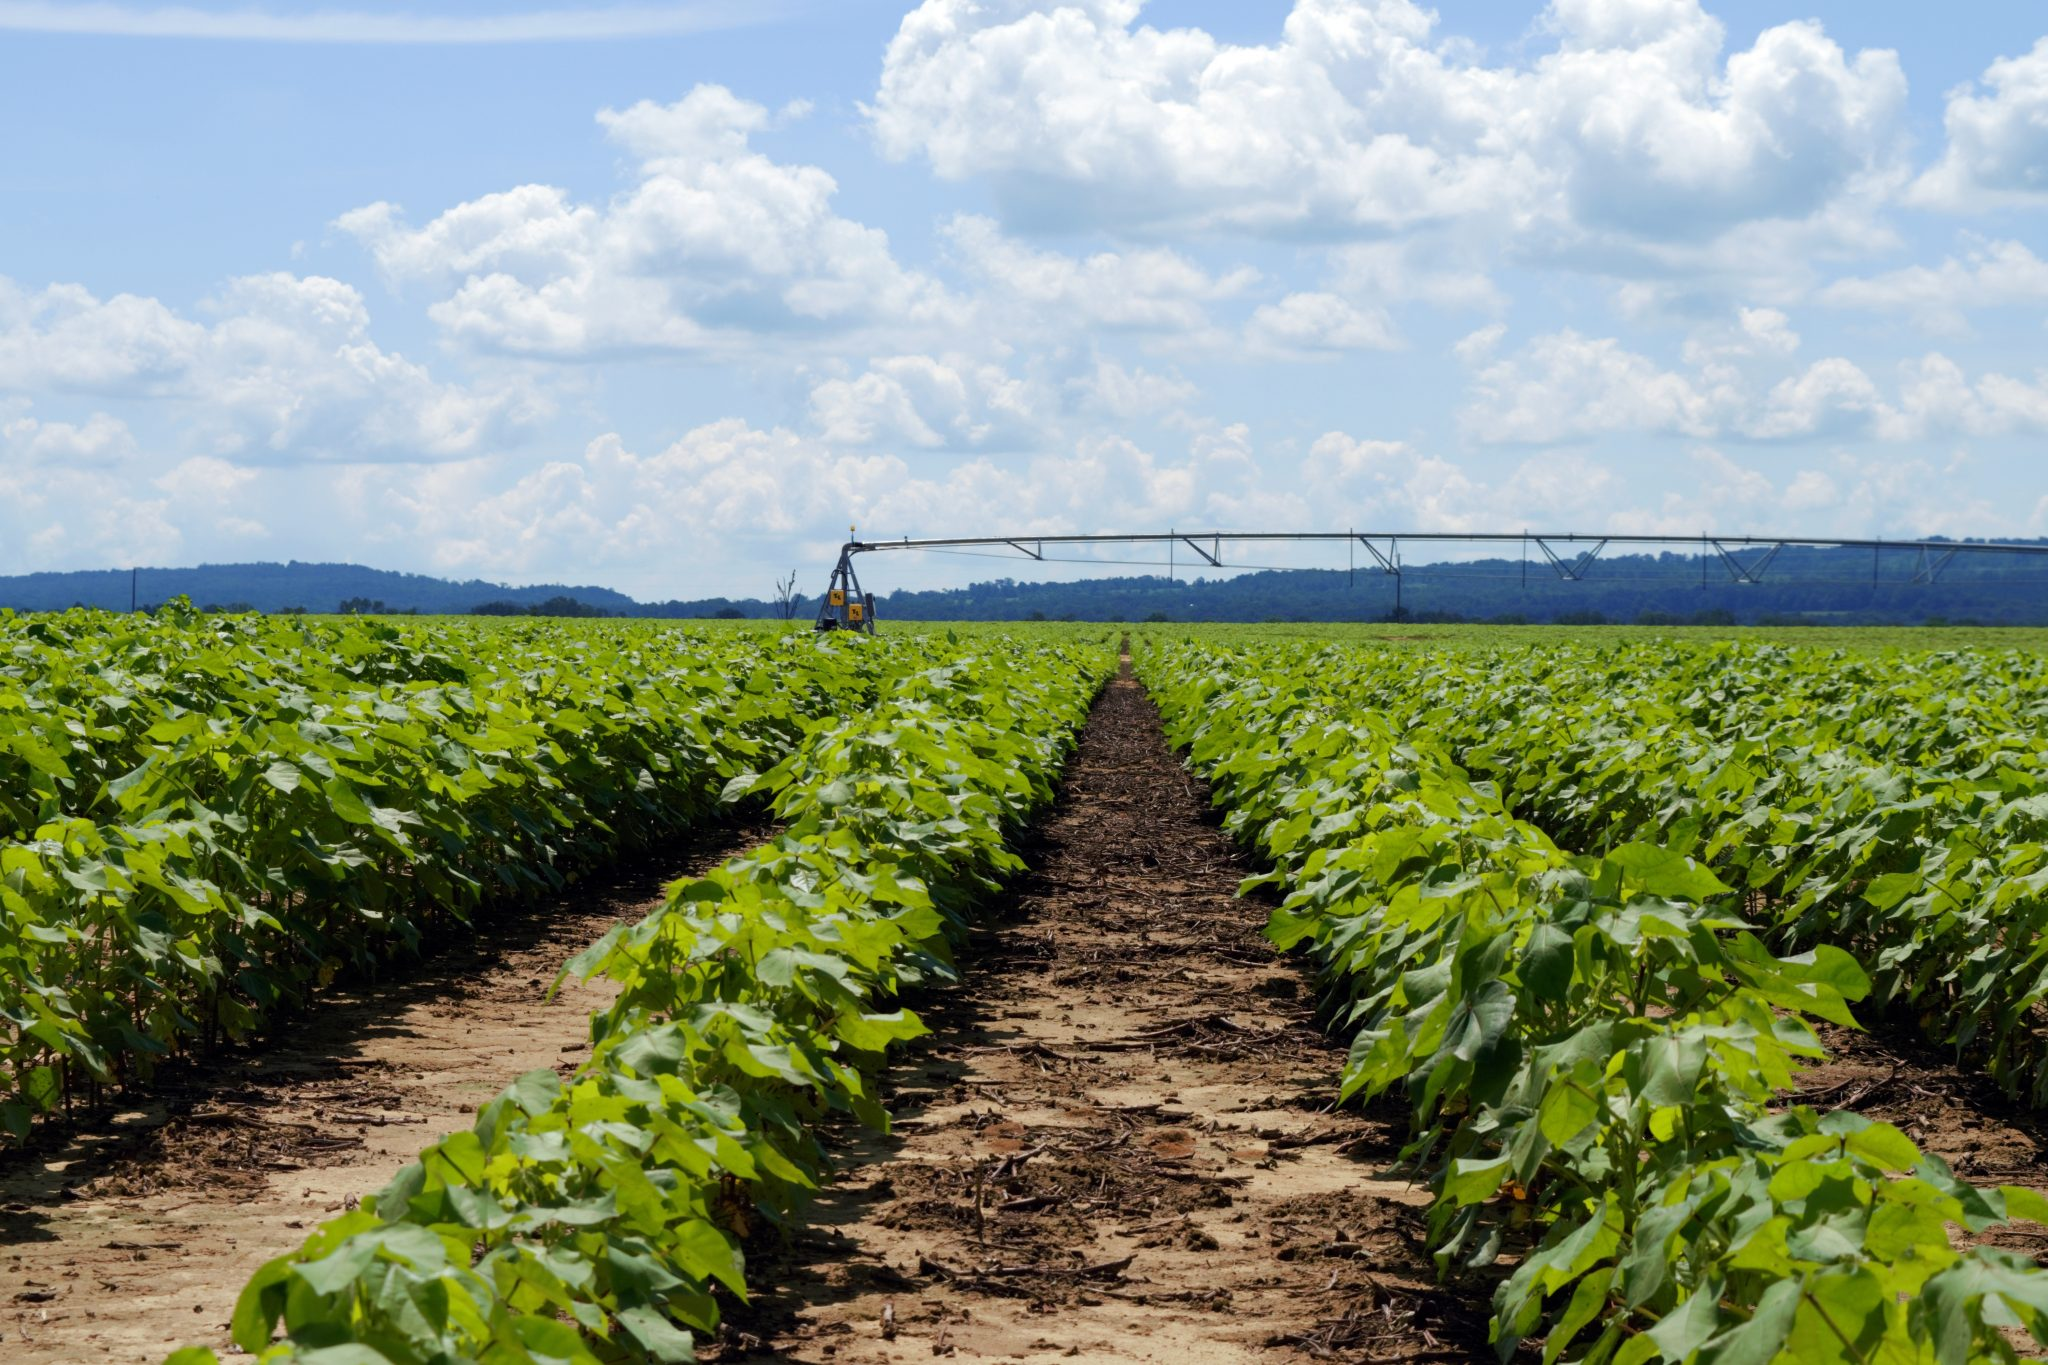 cotton field under irrigation. shutterstock/Dharris324.